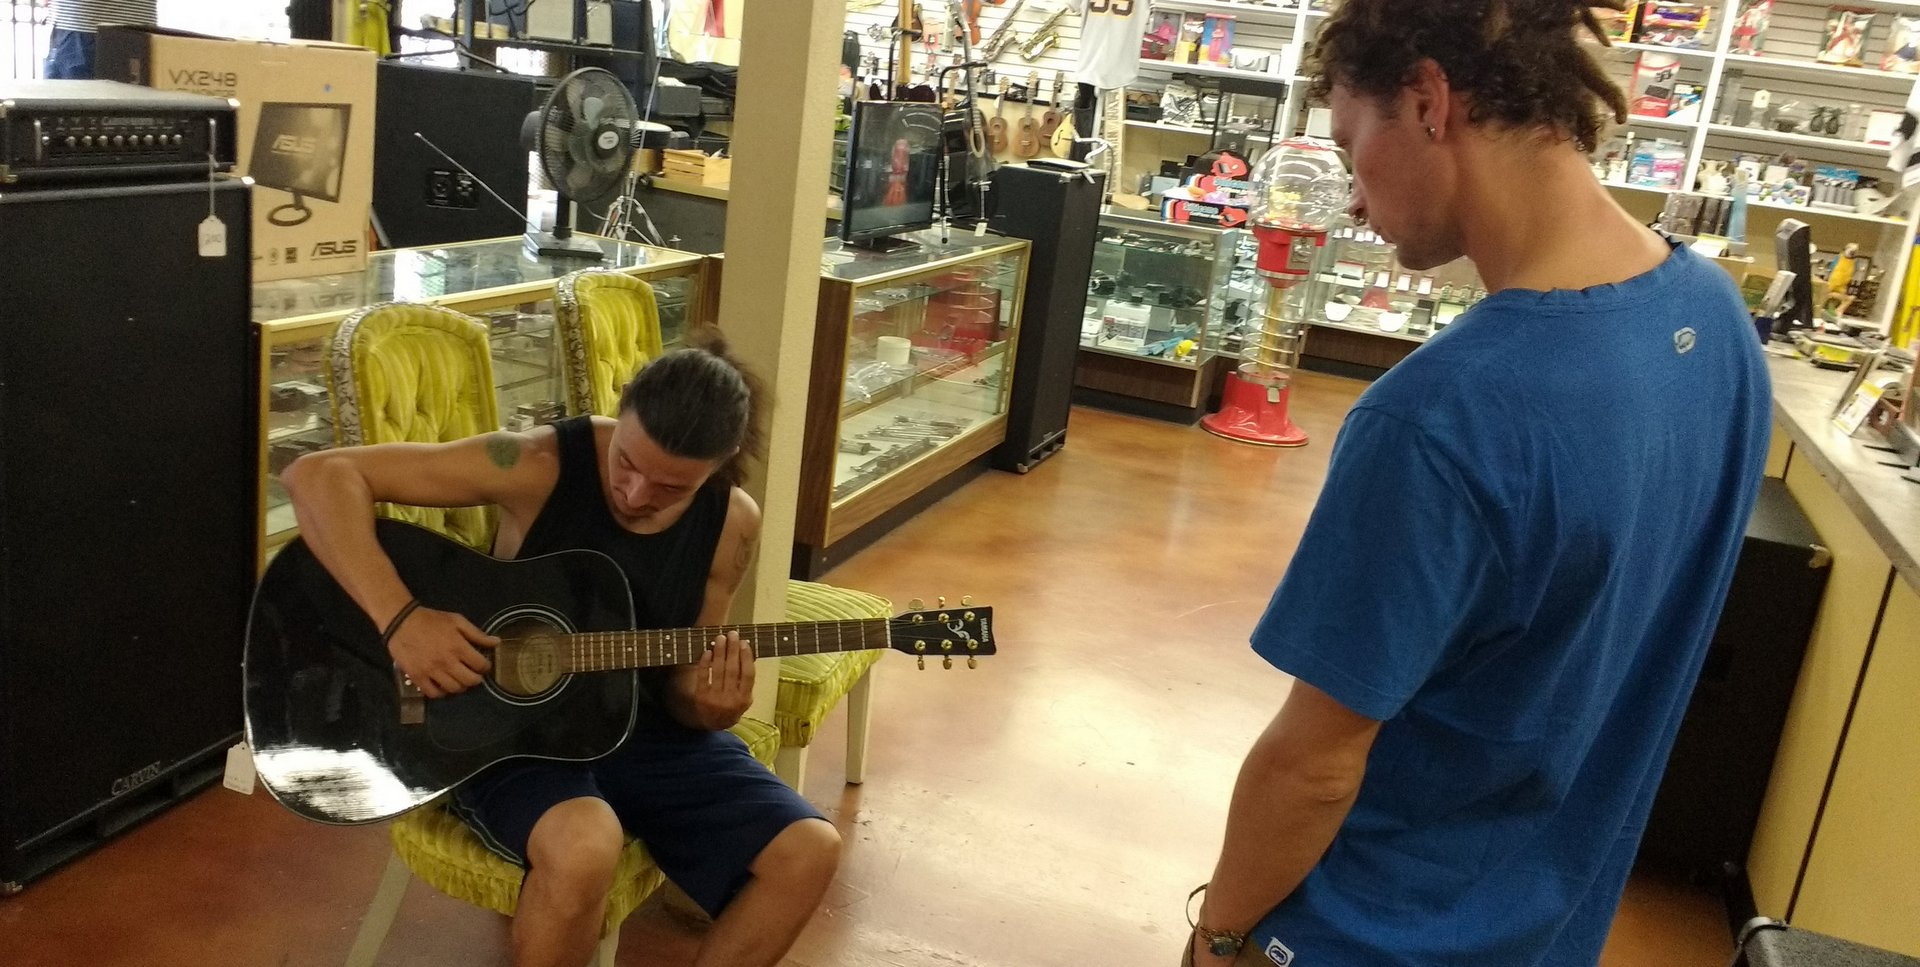 Antonio listening to Fabio try out guitars at the pawn shop